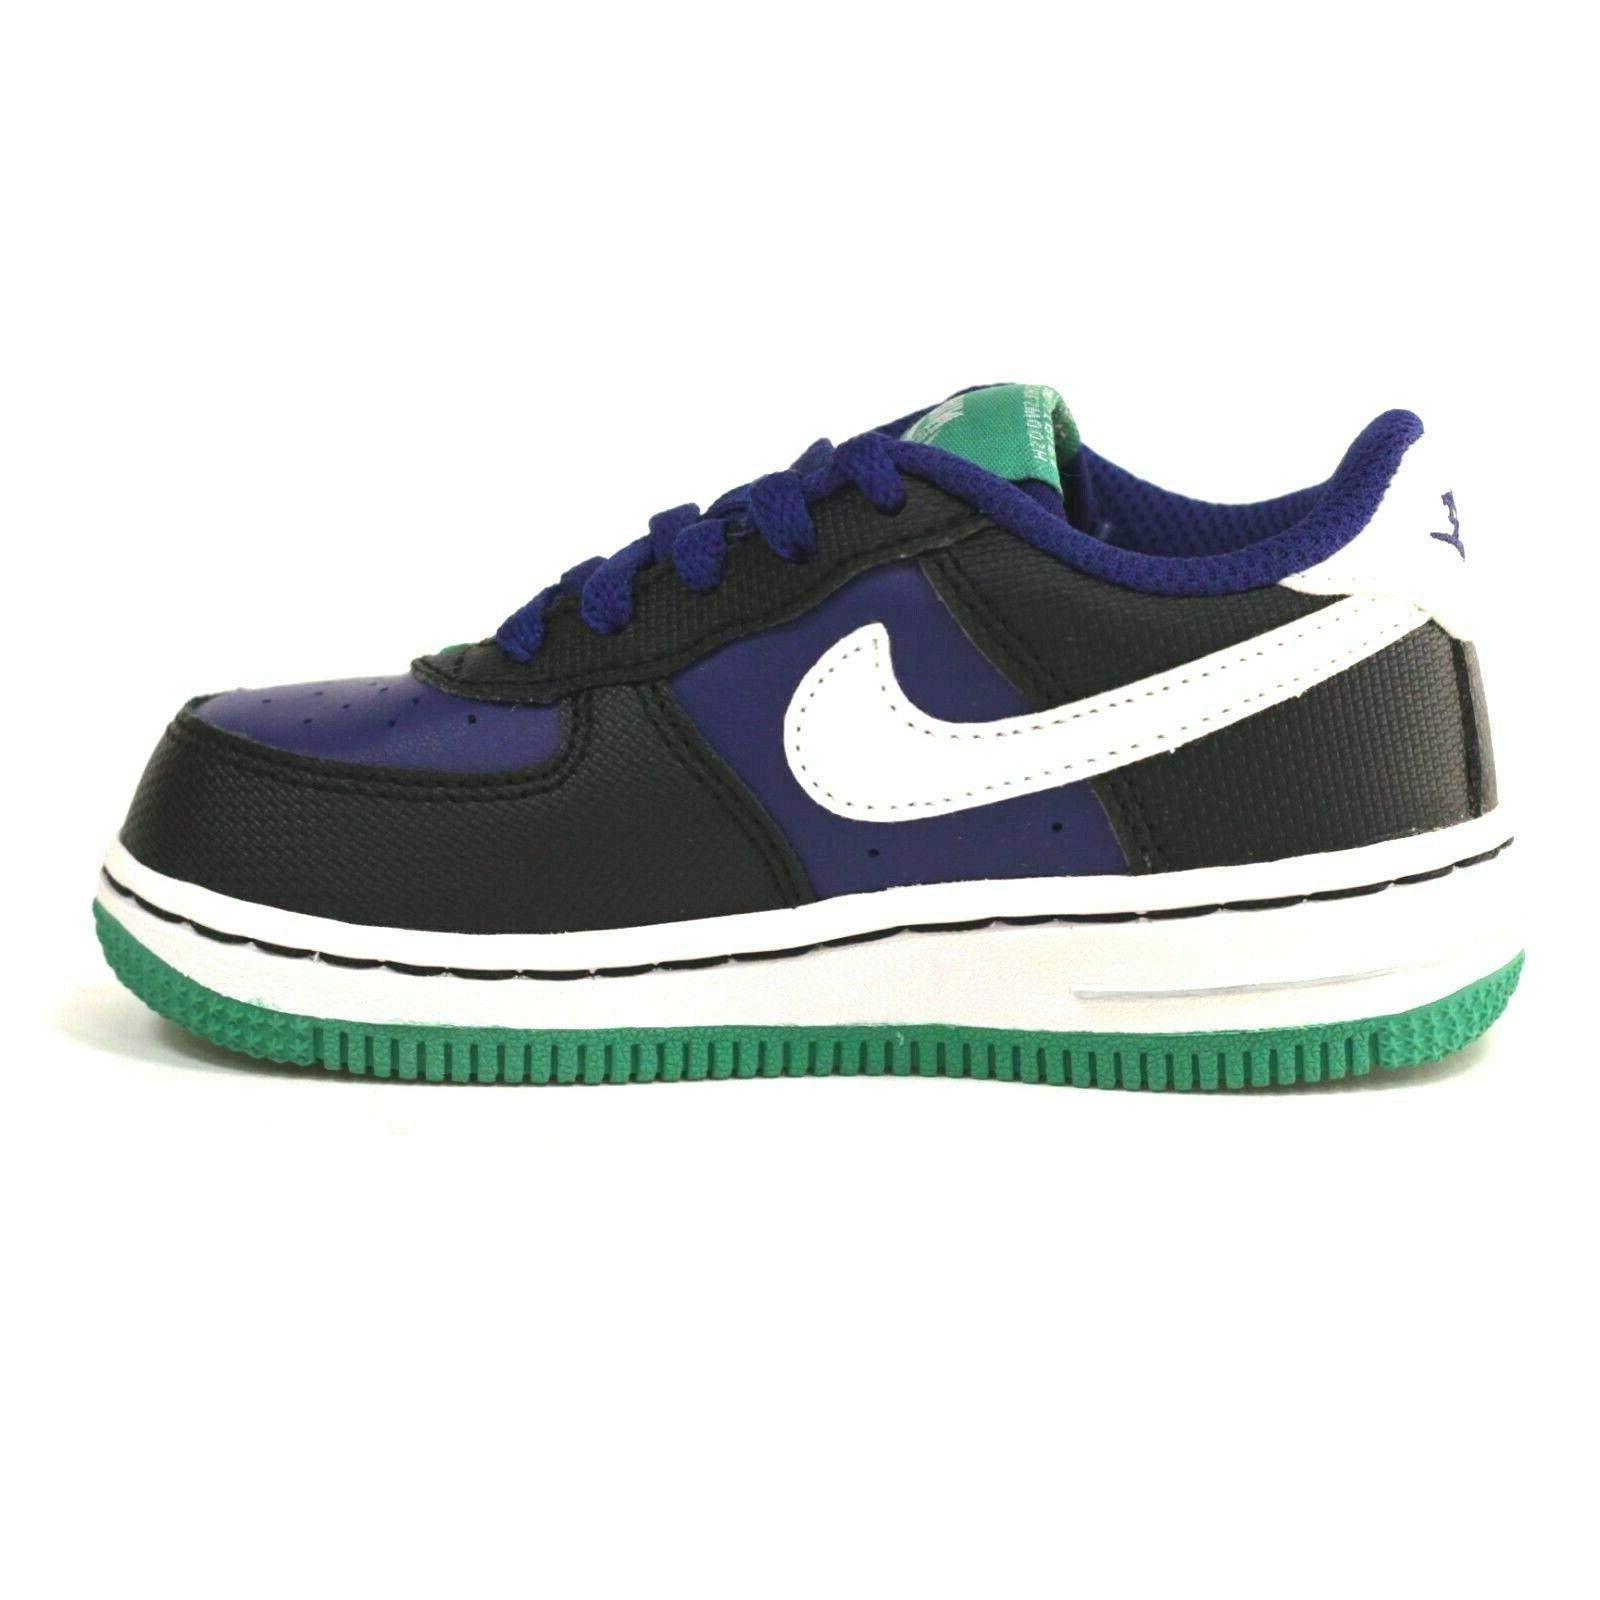 Nike Toddler's Shoes NEW Blue/White/Black 314194-415